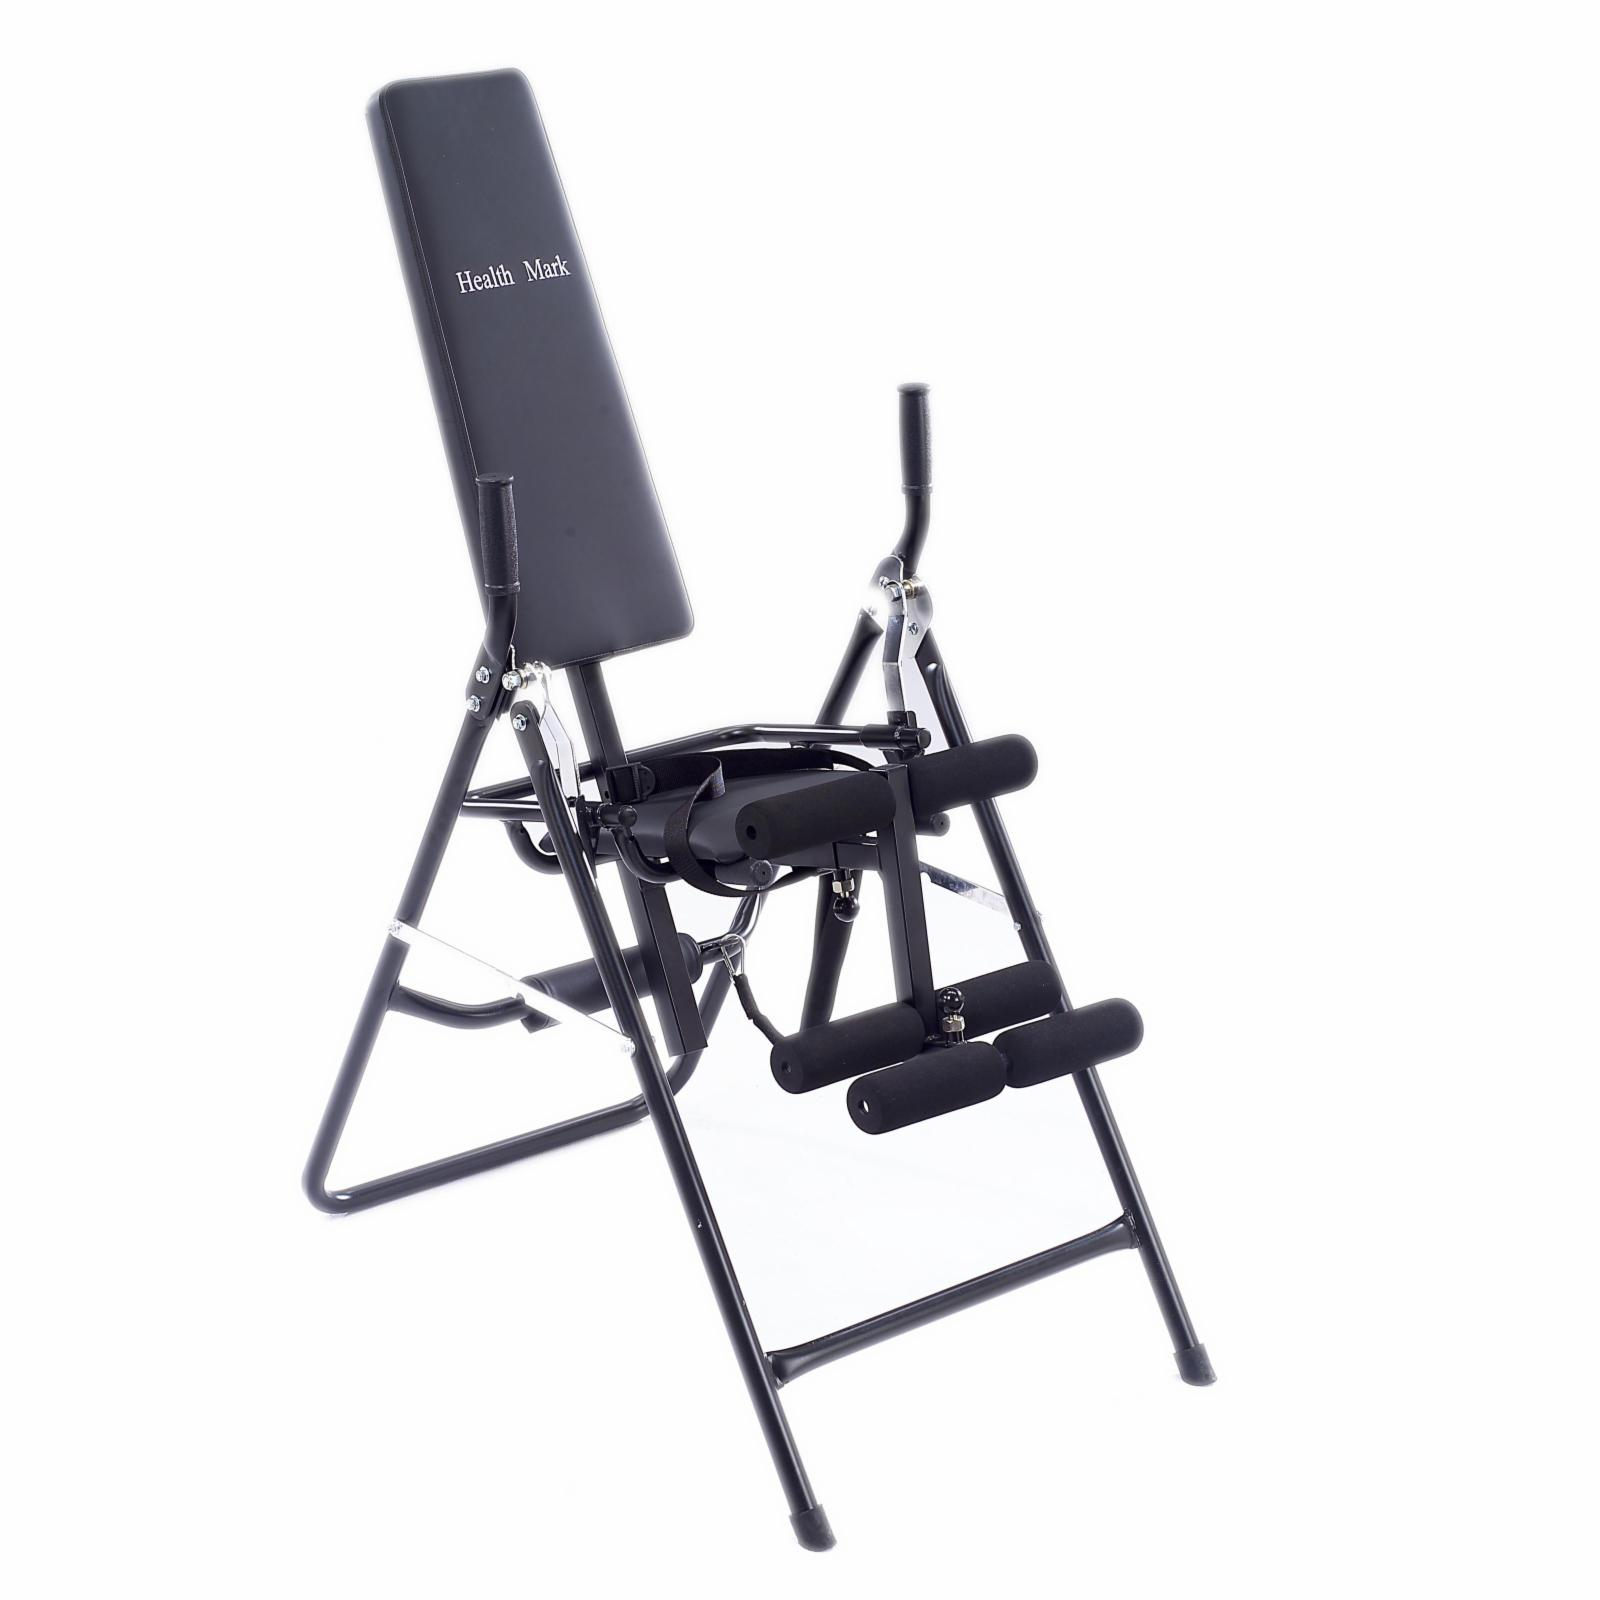 Health Mark Pro Inversion Chair - IVO18600